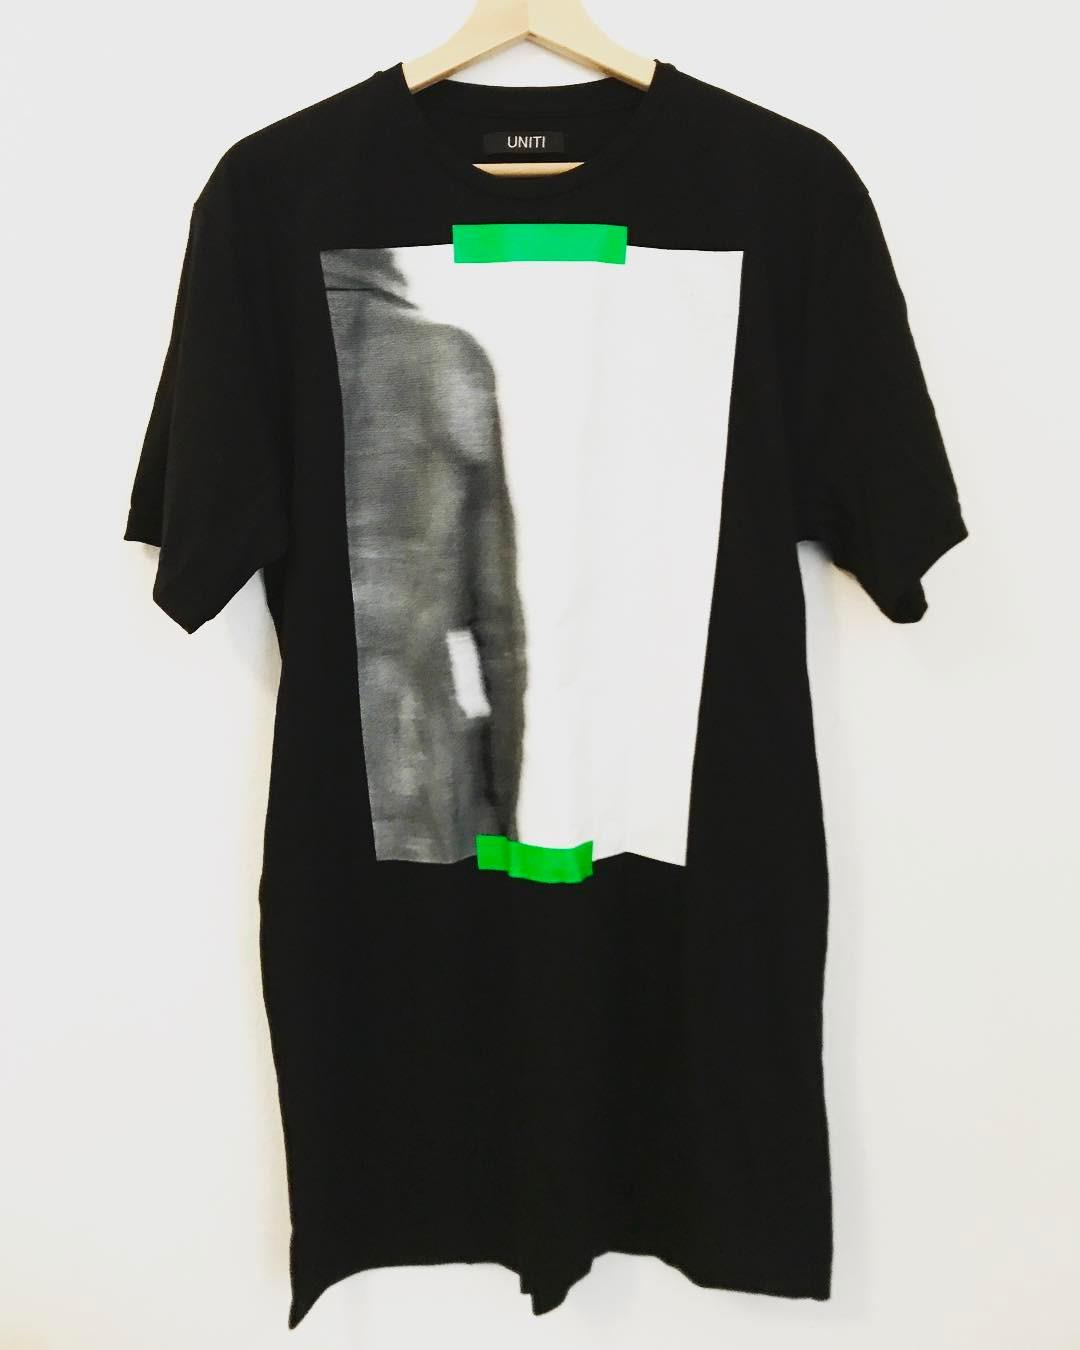 NEW line of graphic t